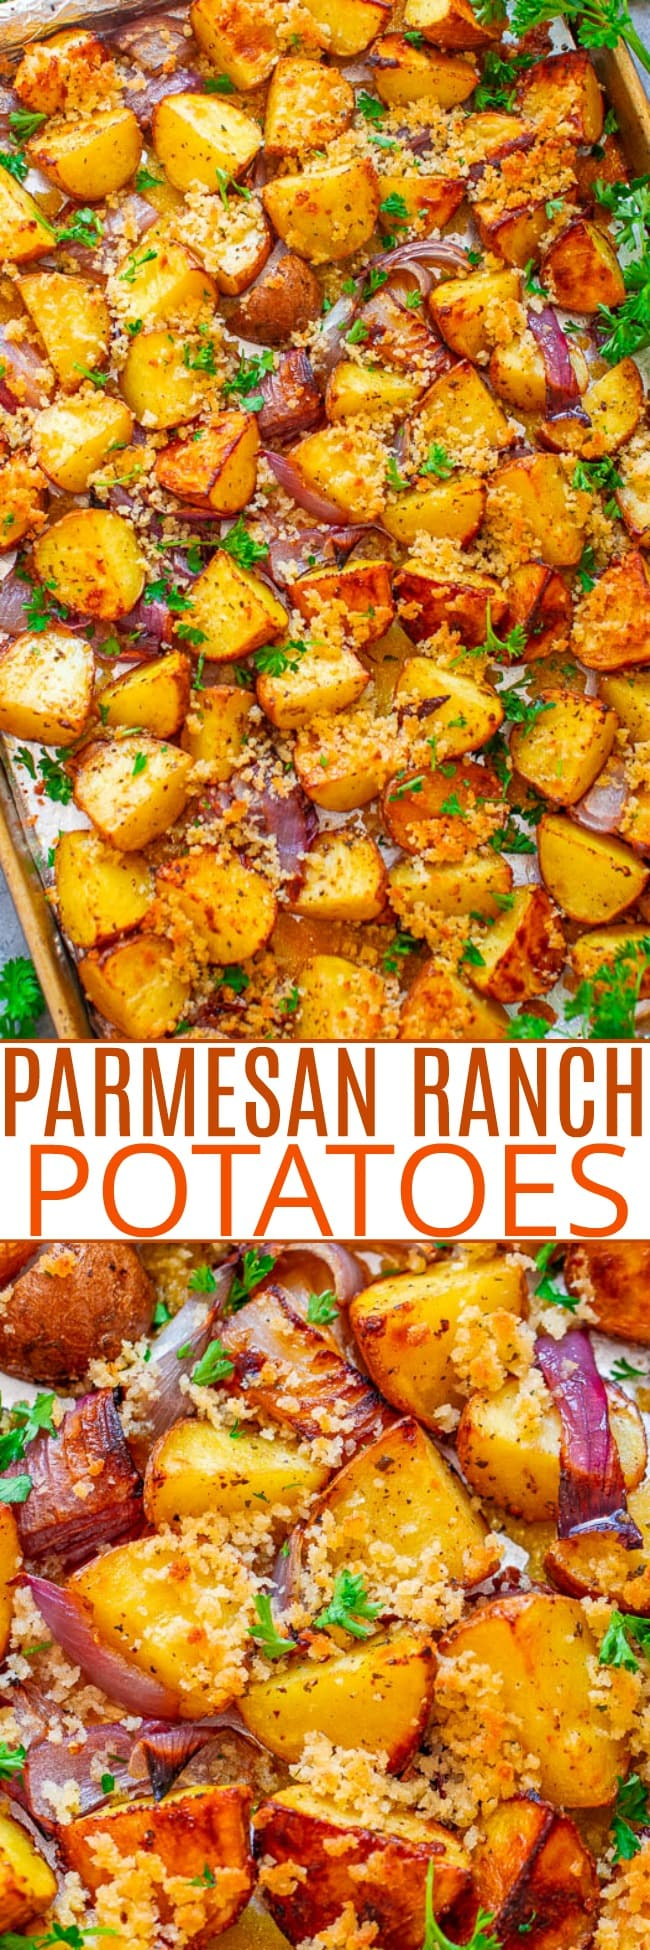 Crispy Parmesan Ranch Potatoes — The BEST roasted potatoes you'll ever eat!! Tender potatoes seasoned with ranch mix and topped with a CRISPY Parmesan breadcrumb topping! So DELICIOUS you don't even need a main course!!